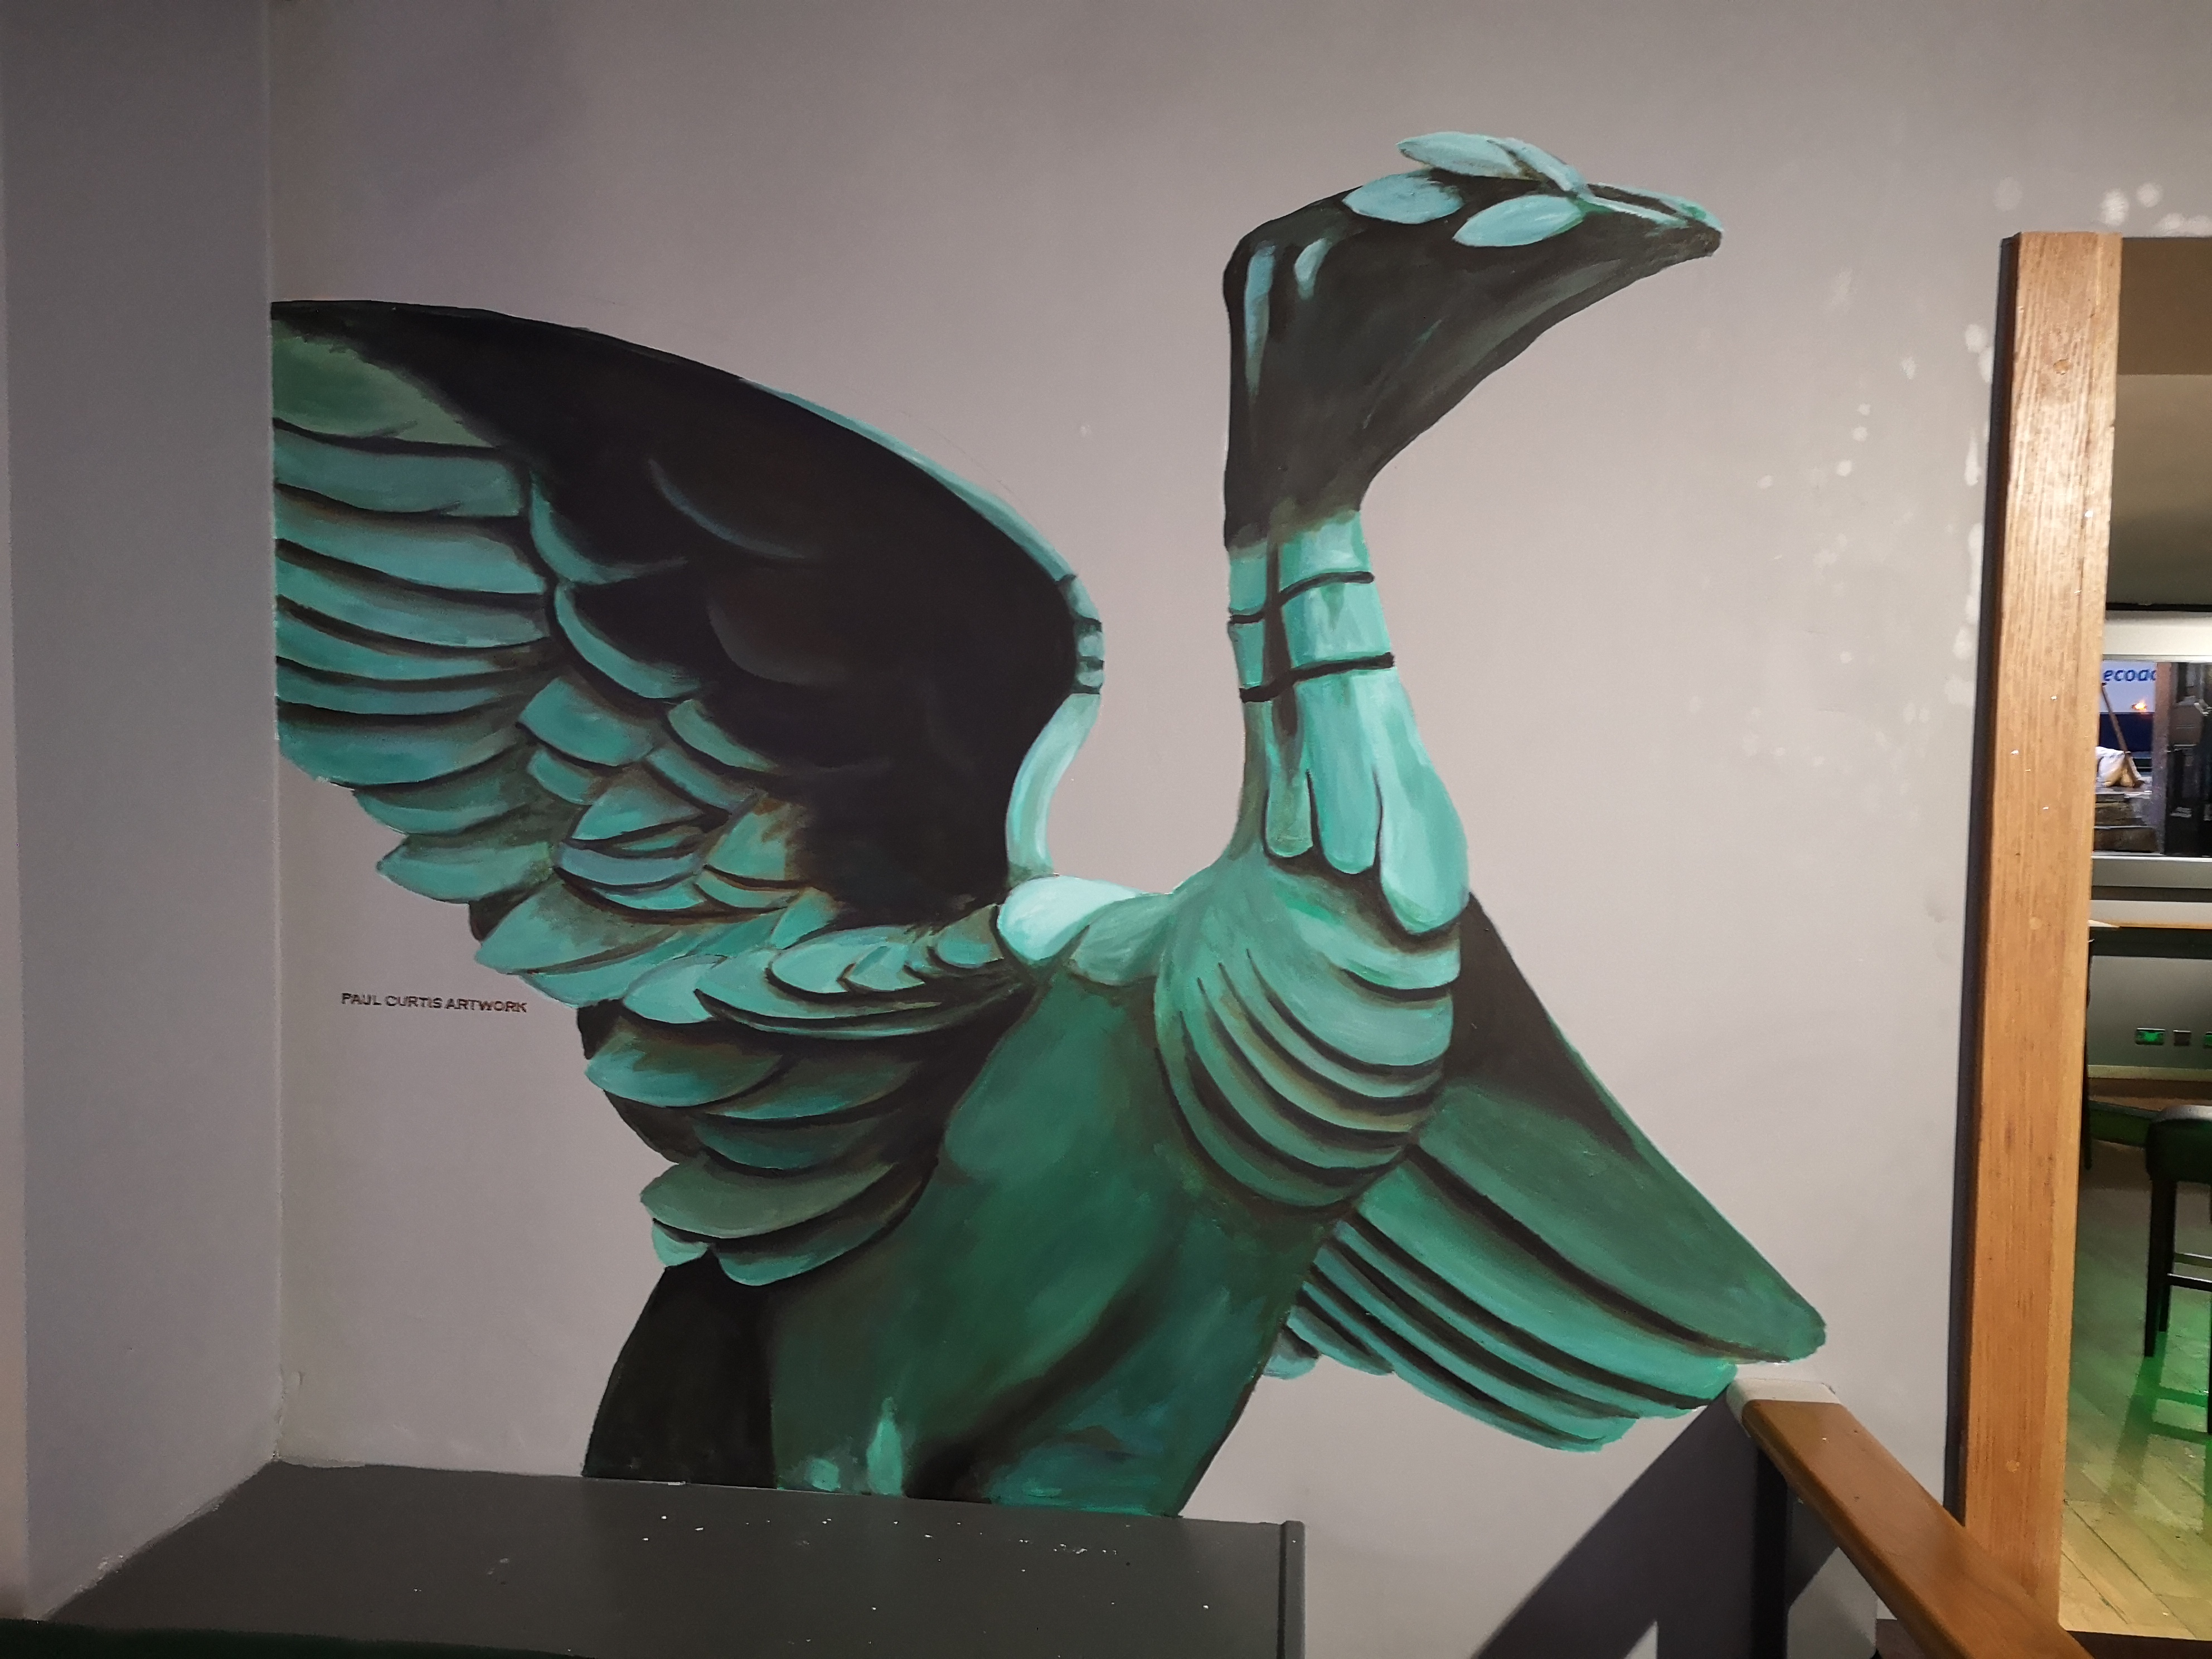 Liver Bird Mural by Paul Curtis at Harri